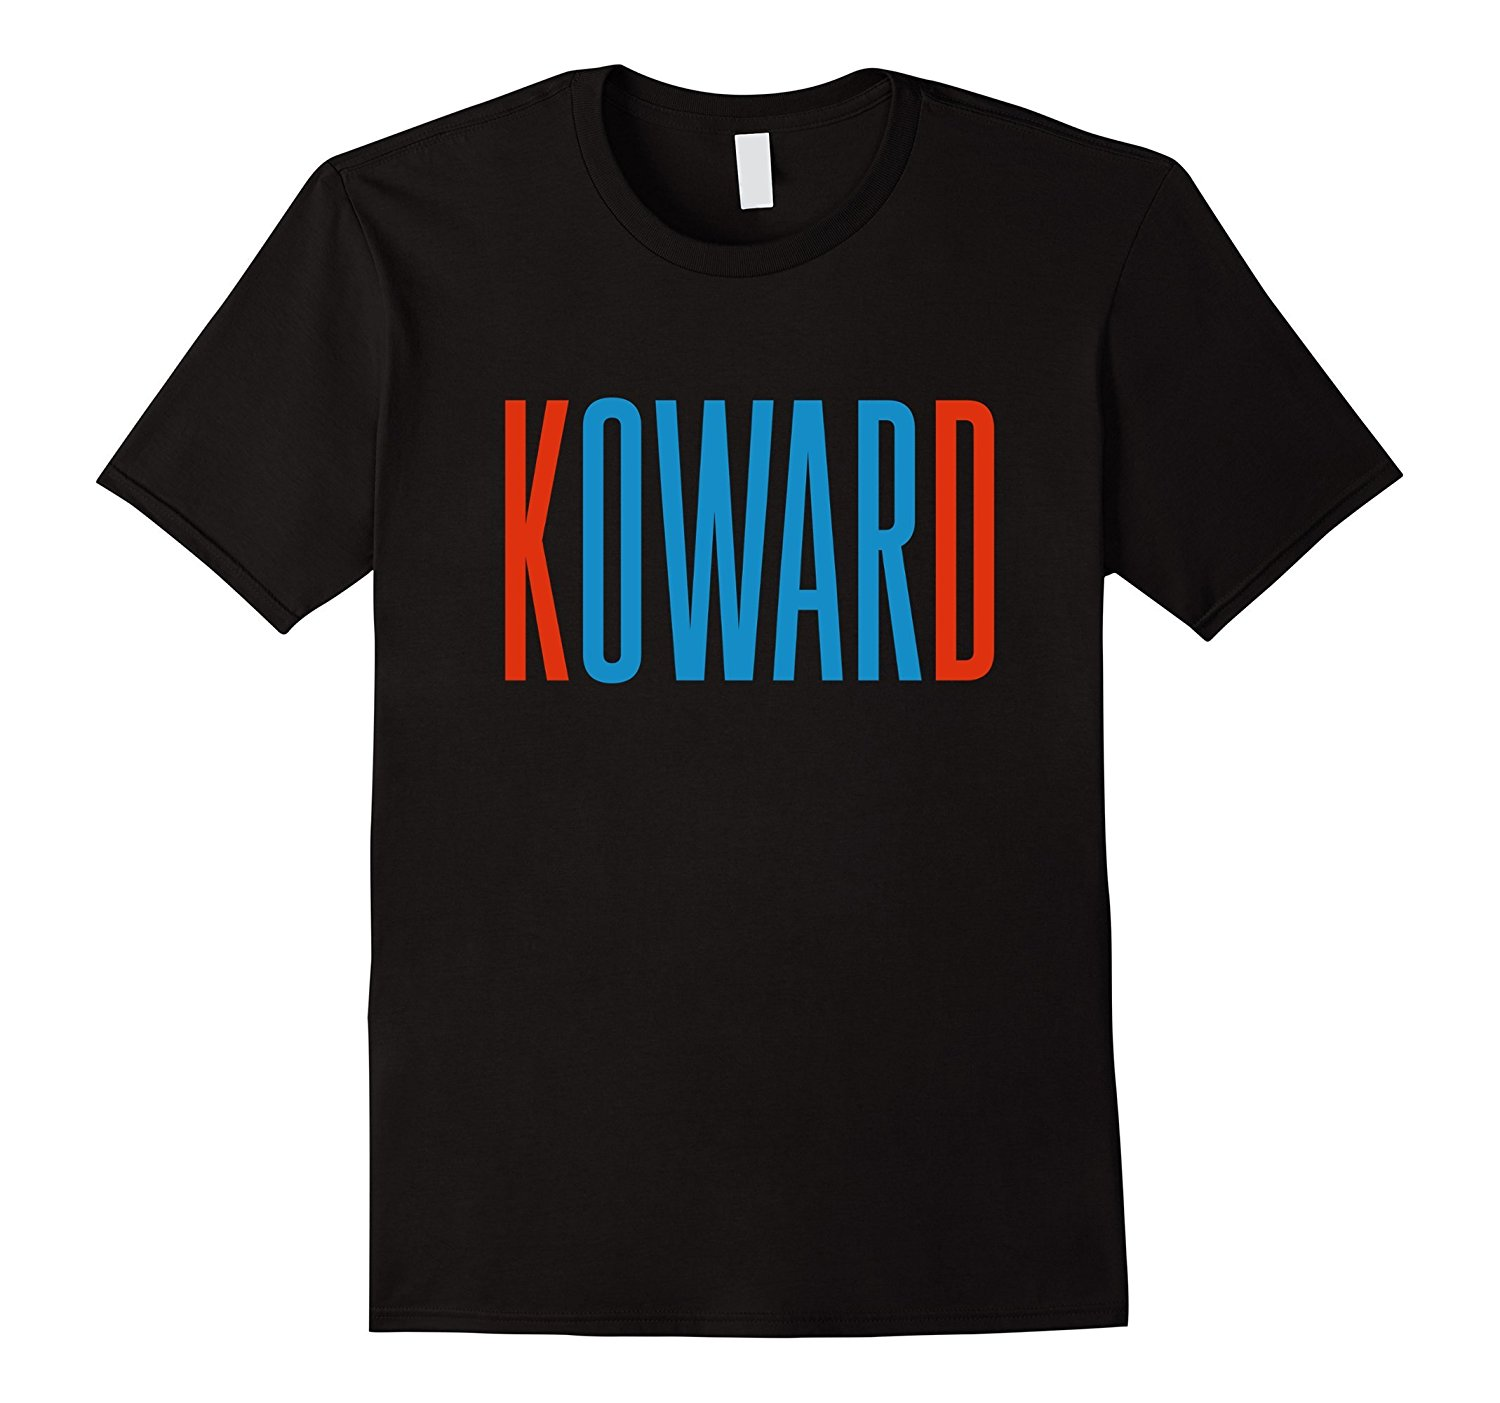 Koward <font><b>KD</b></font> Fans Cupcake Front and Back Printed T-<font><b>Shirt</b></font> Men'S Short Sleeve O-Neck T-<font><b>Shirts</b></font> Summer Stree Twear image